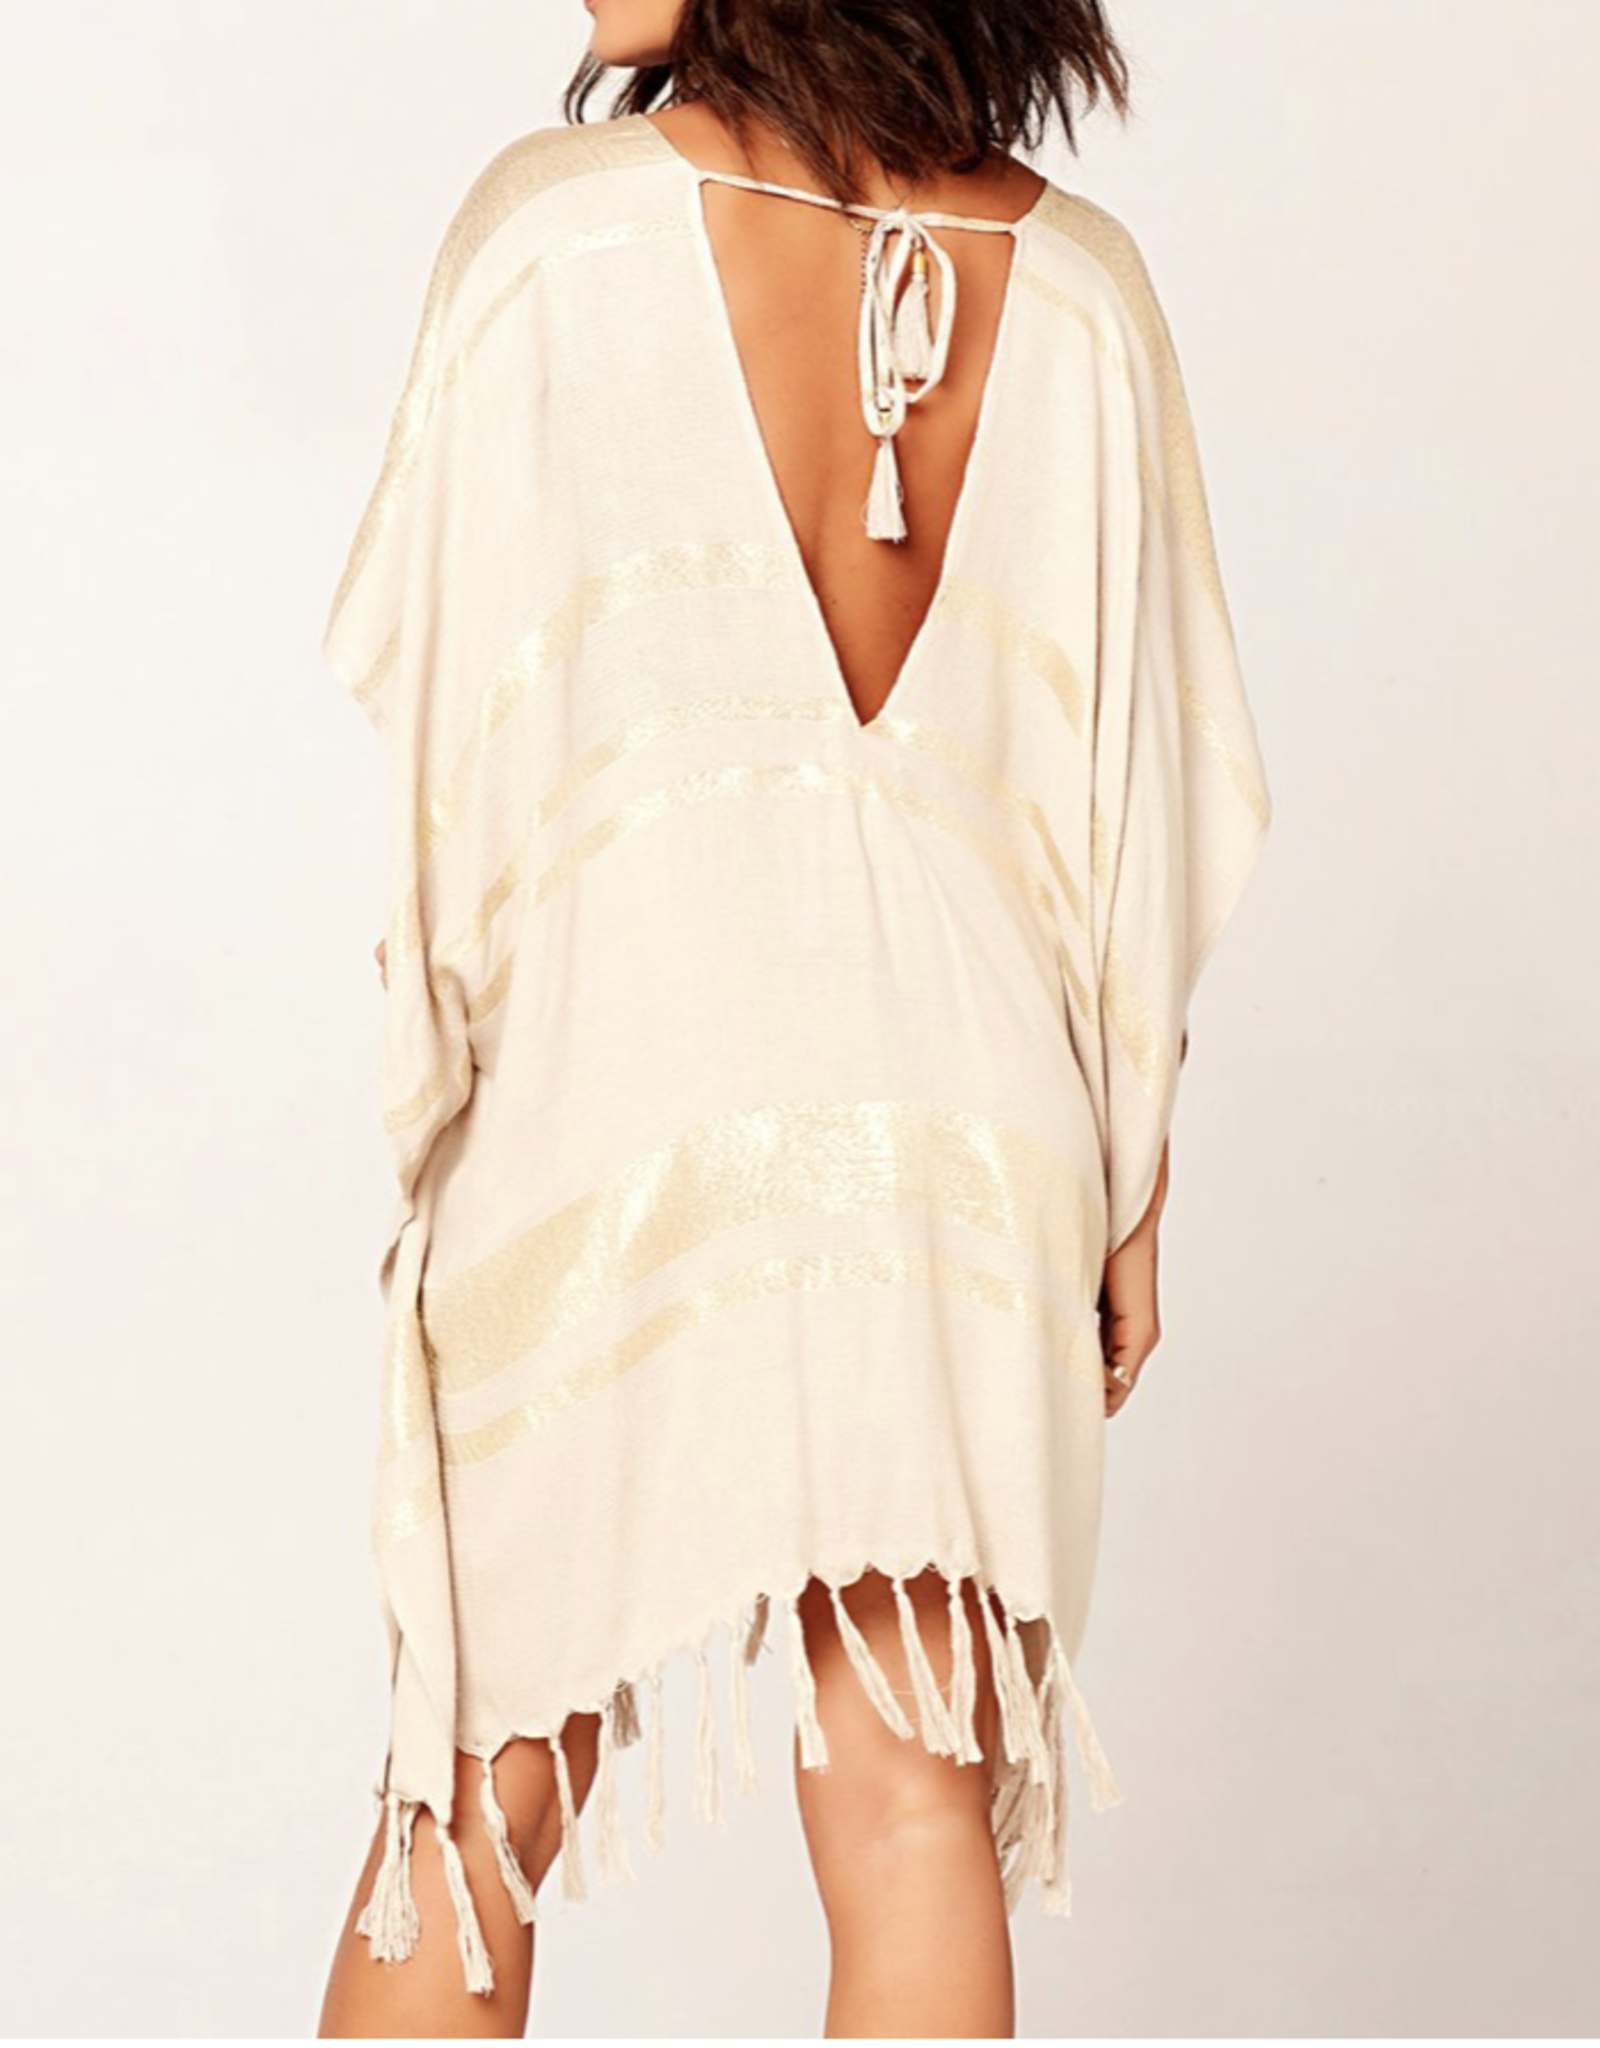 LSpace Cream Seaport Cover-UP